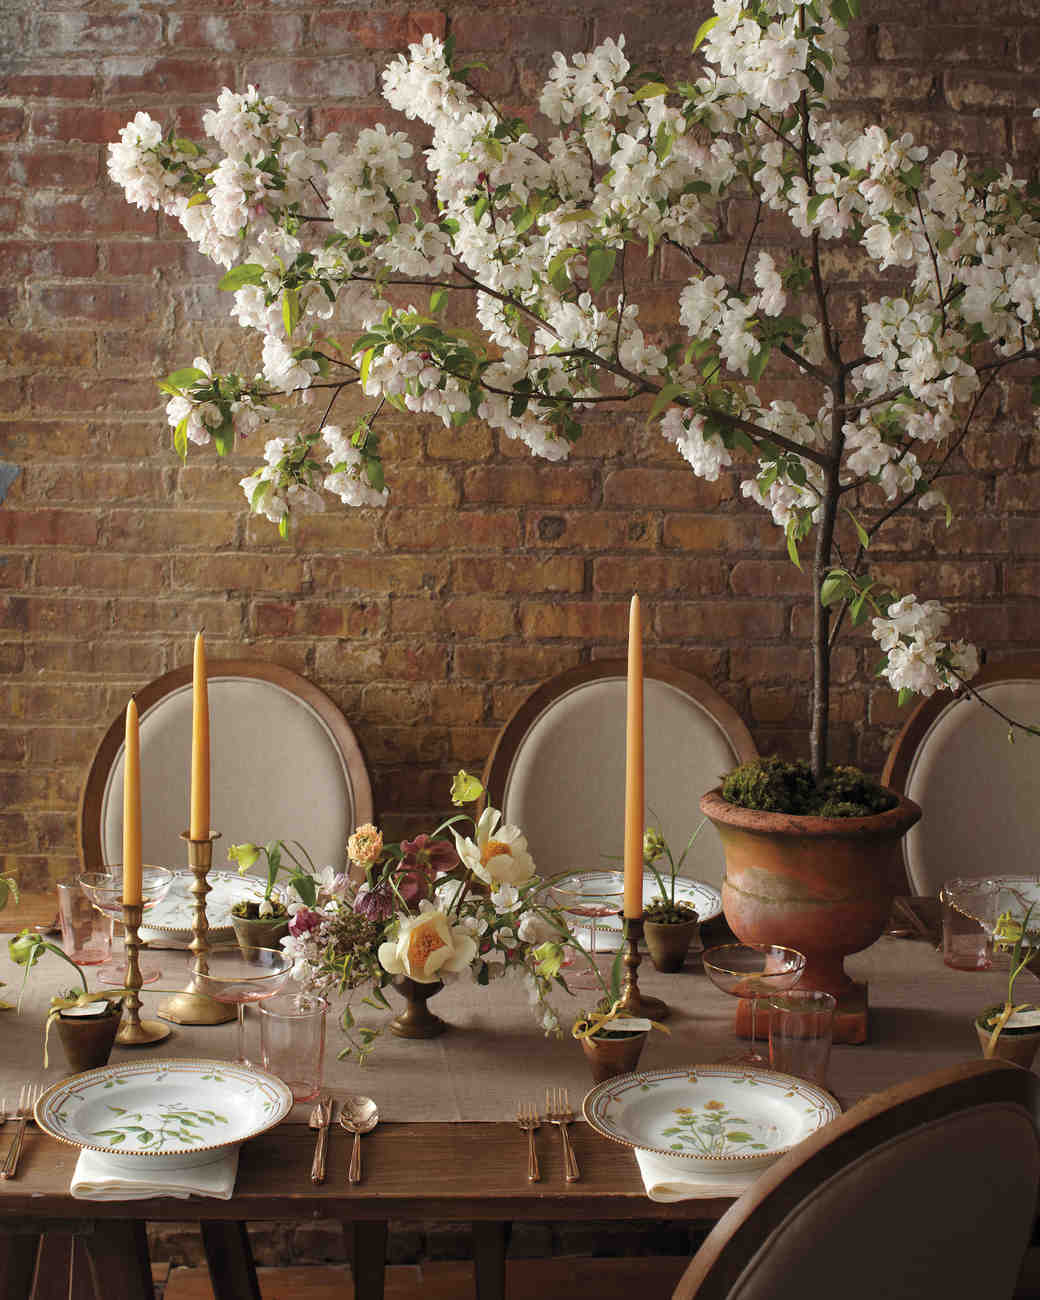 Spring Wedding Centerpiece Ideas: Spring Wedding Flower Ideas From The Industry's Best